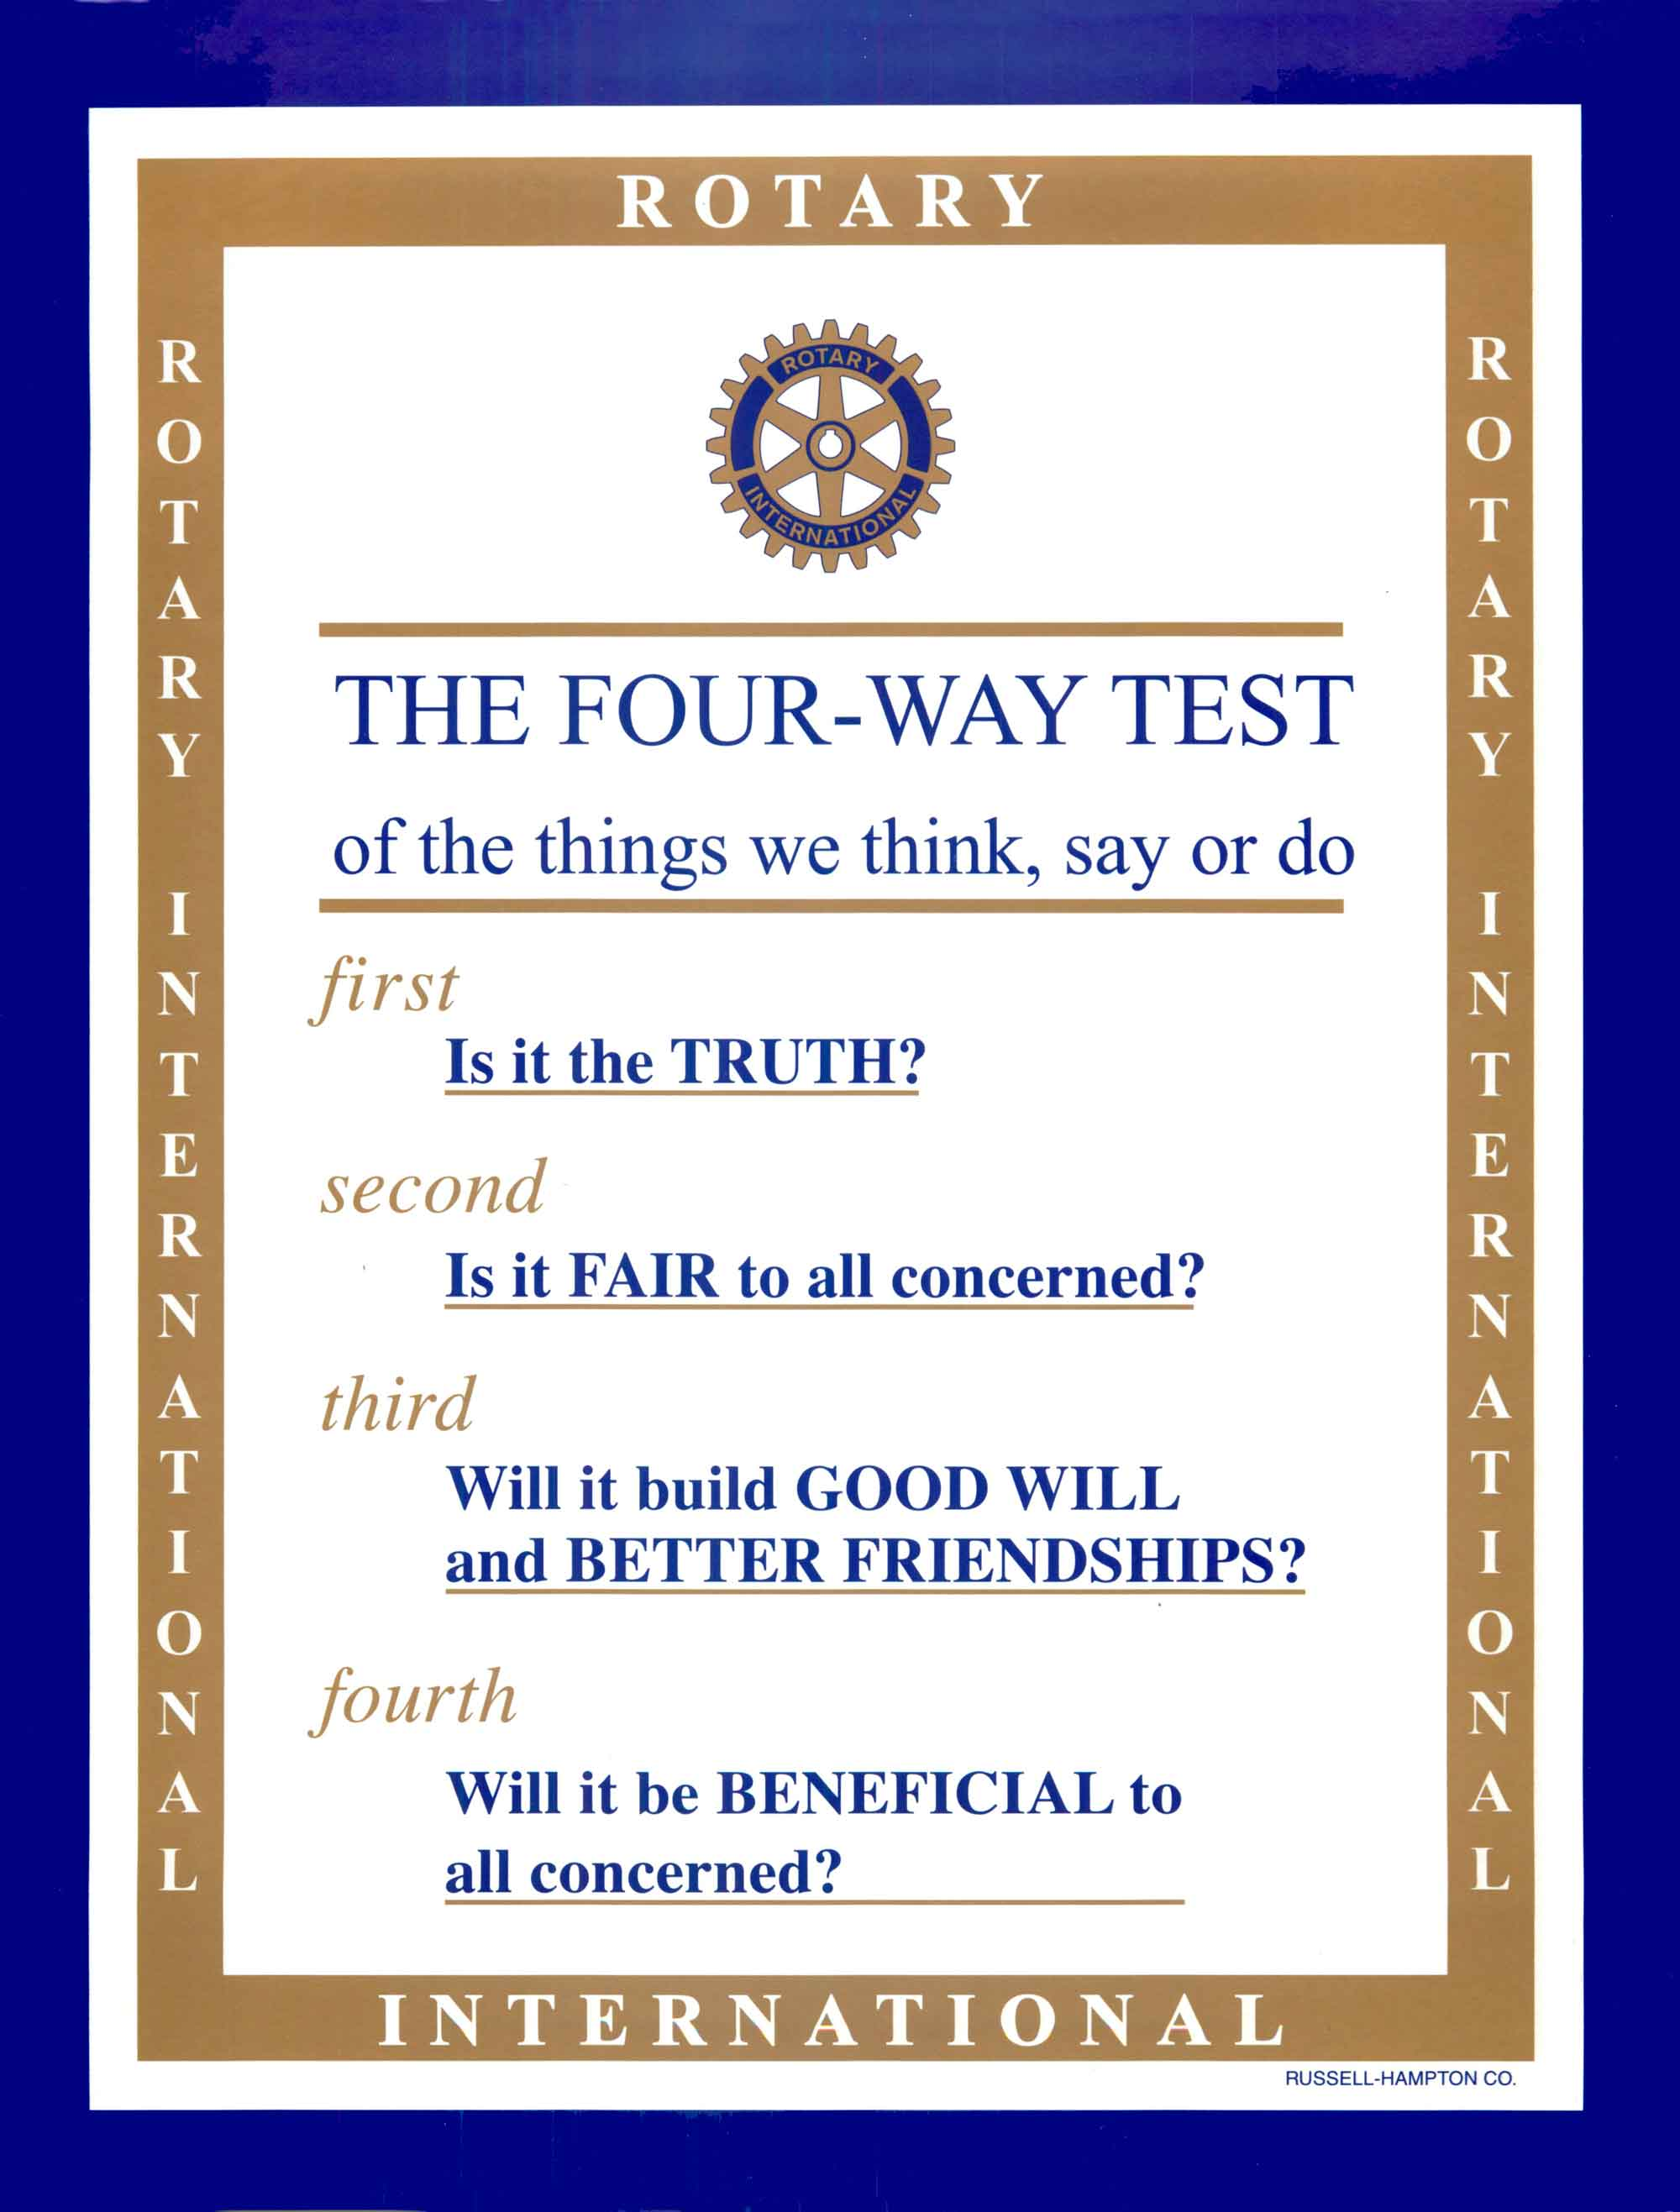 2014 rotary 4 way test essay winner mckenna eisenzimmer the rotary four way test is important because it teaches people how to work together to build a better community good leaders of all ages